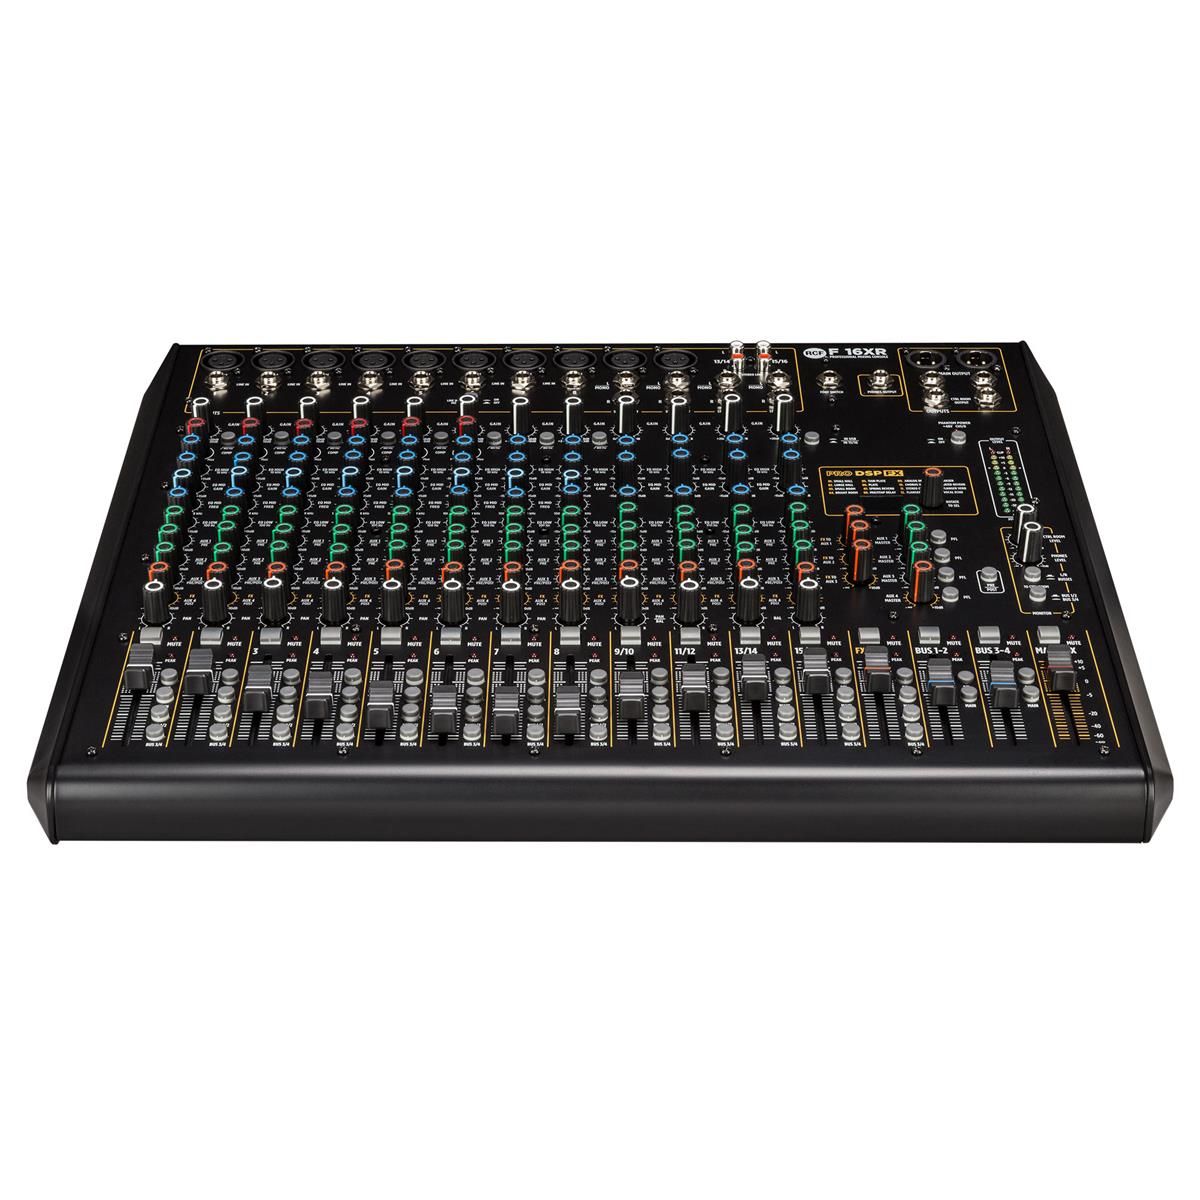 RCF F 16XR 90-240V 16 channel mixing console with multi-FX &